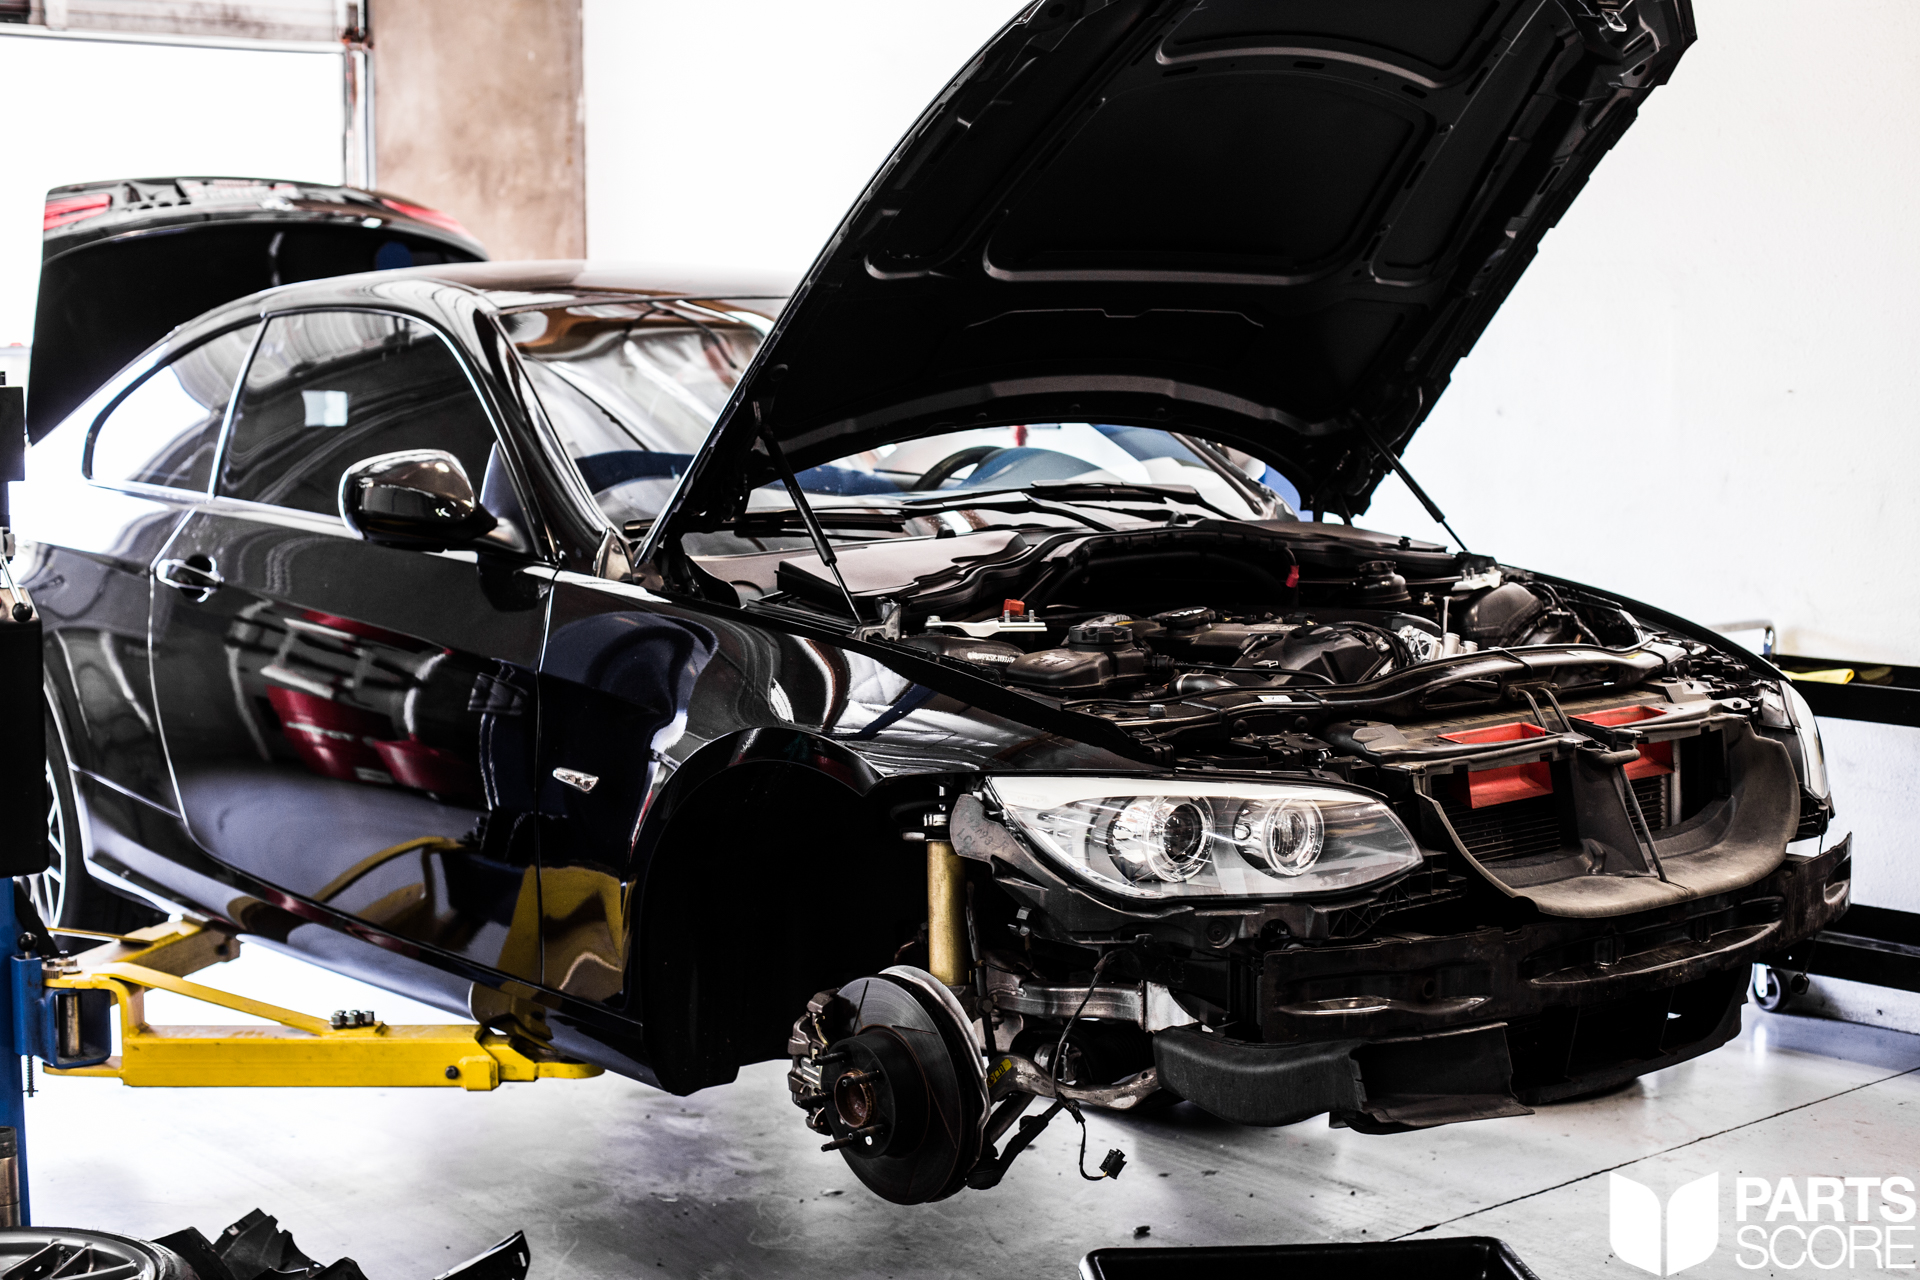 partsscore, parts score, bmw, bmwm, 328i, n51, n52, bmw328i, e90, e92, e91, e93, supercharged, supercharger, vortech, esstuning, ess tuning, evolutionracewerks, evolution race werks, catchcan, trackcar, racecar